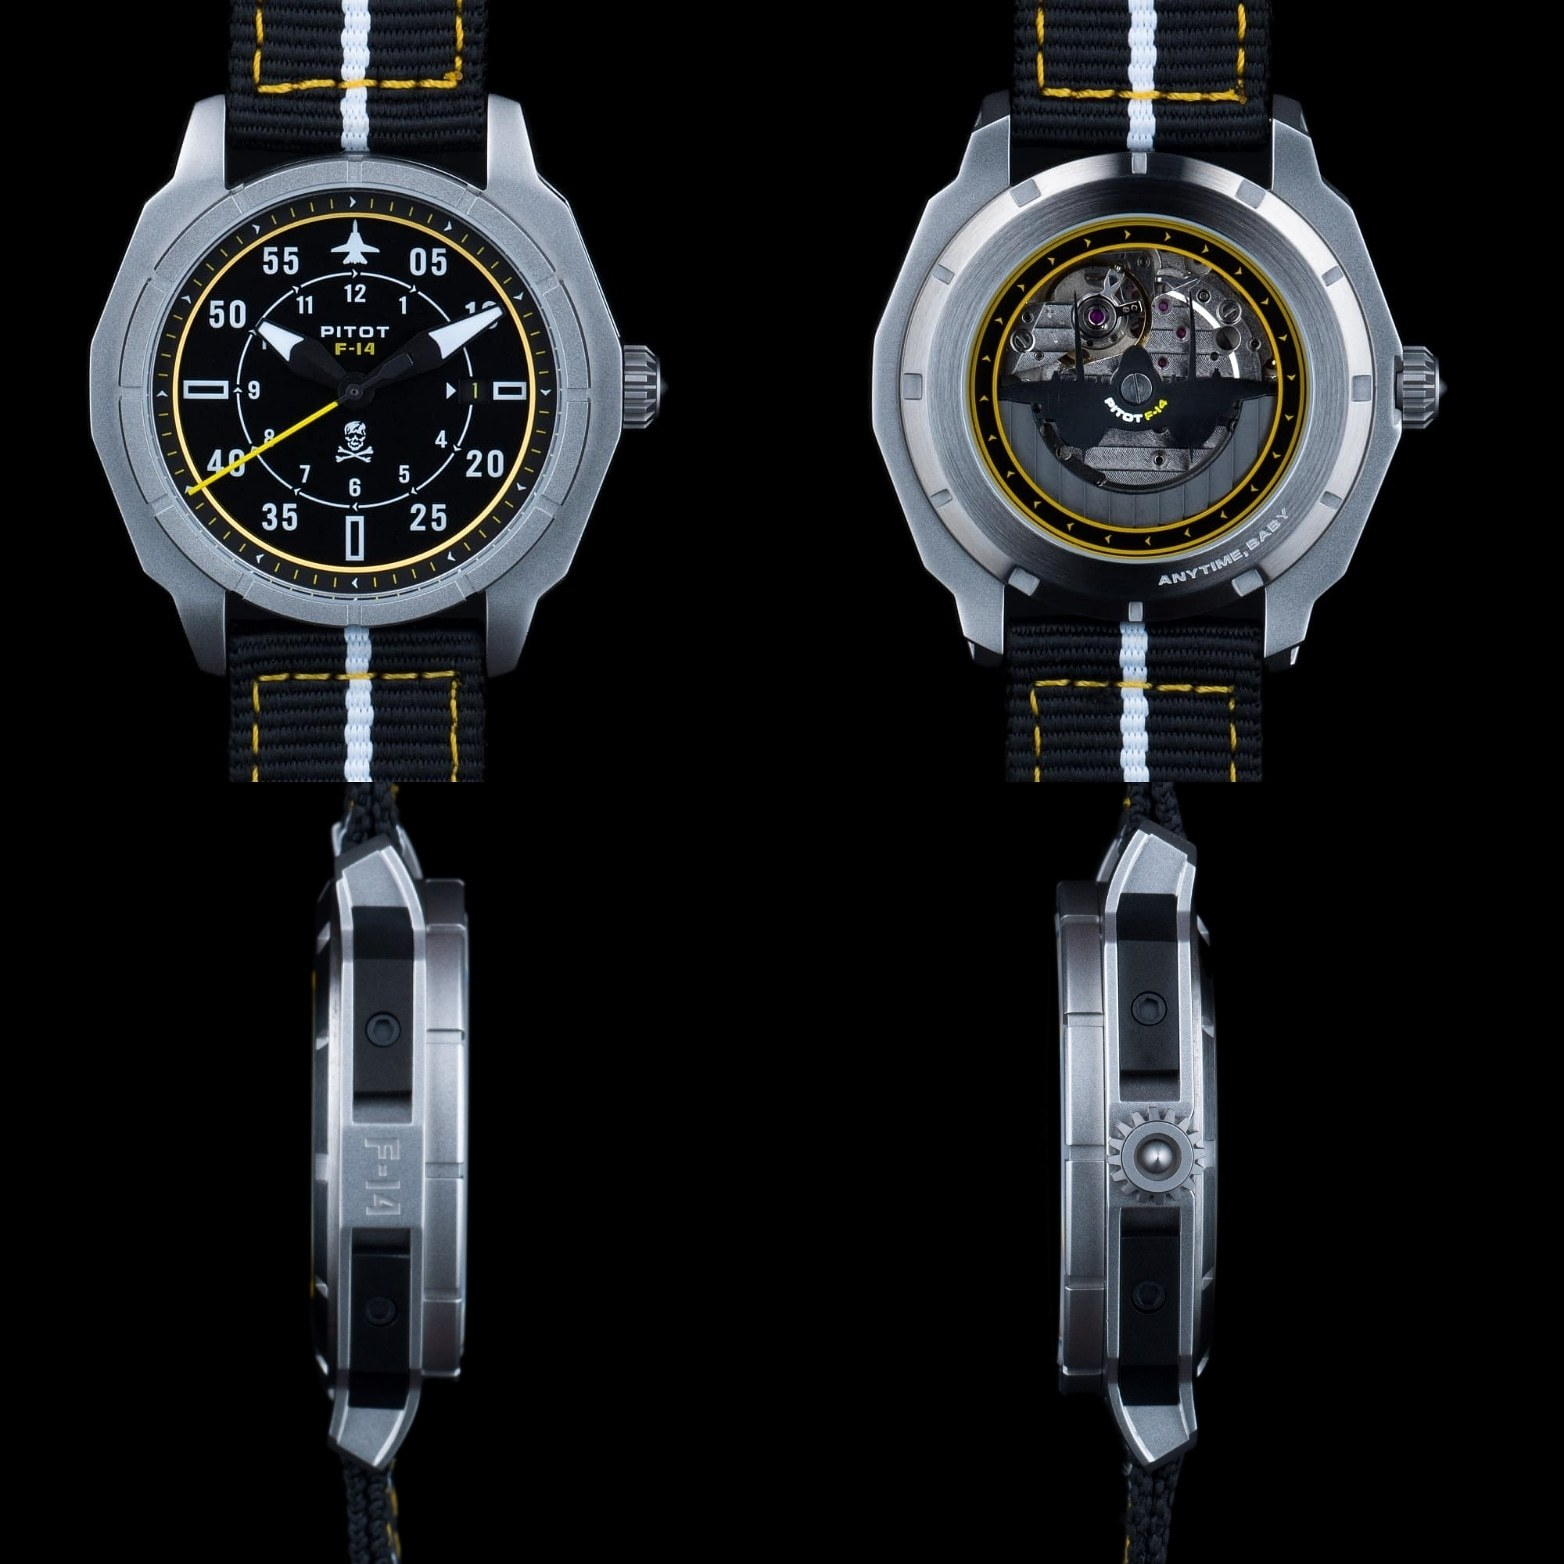 For F-14 fans, clever, aviation-inspired touches abound in the Pitot F-14 collection.